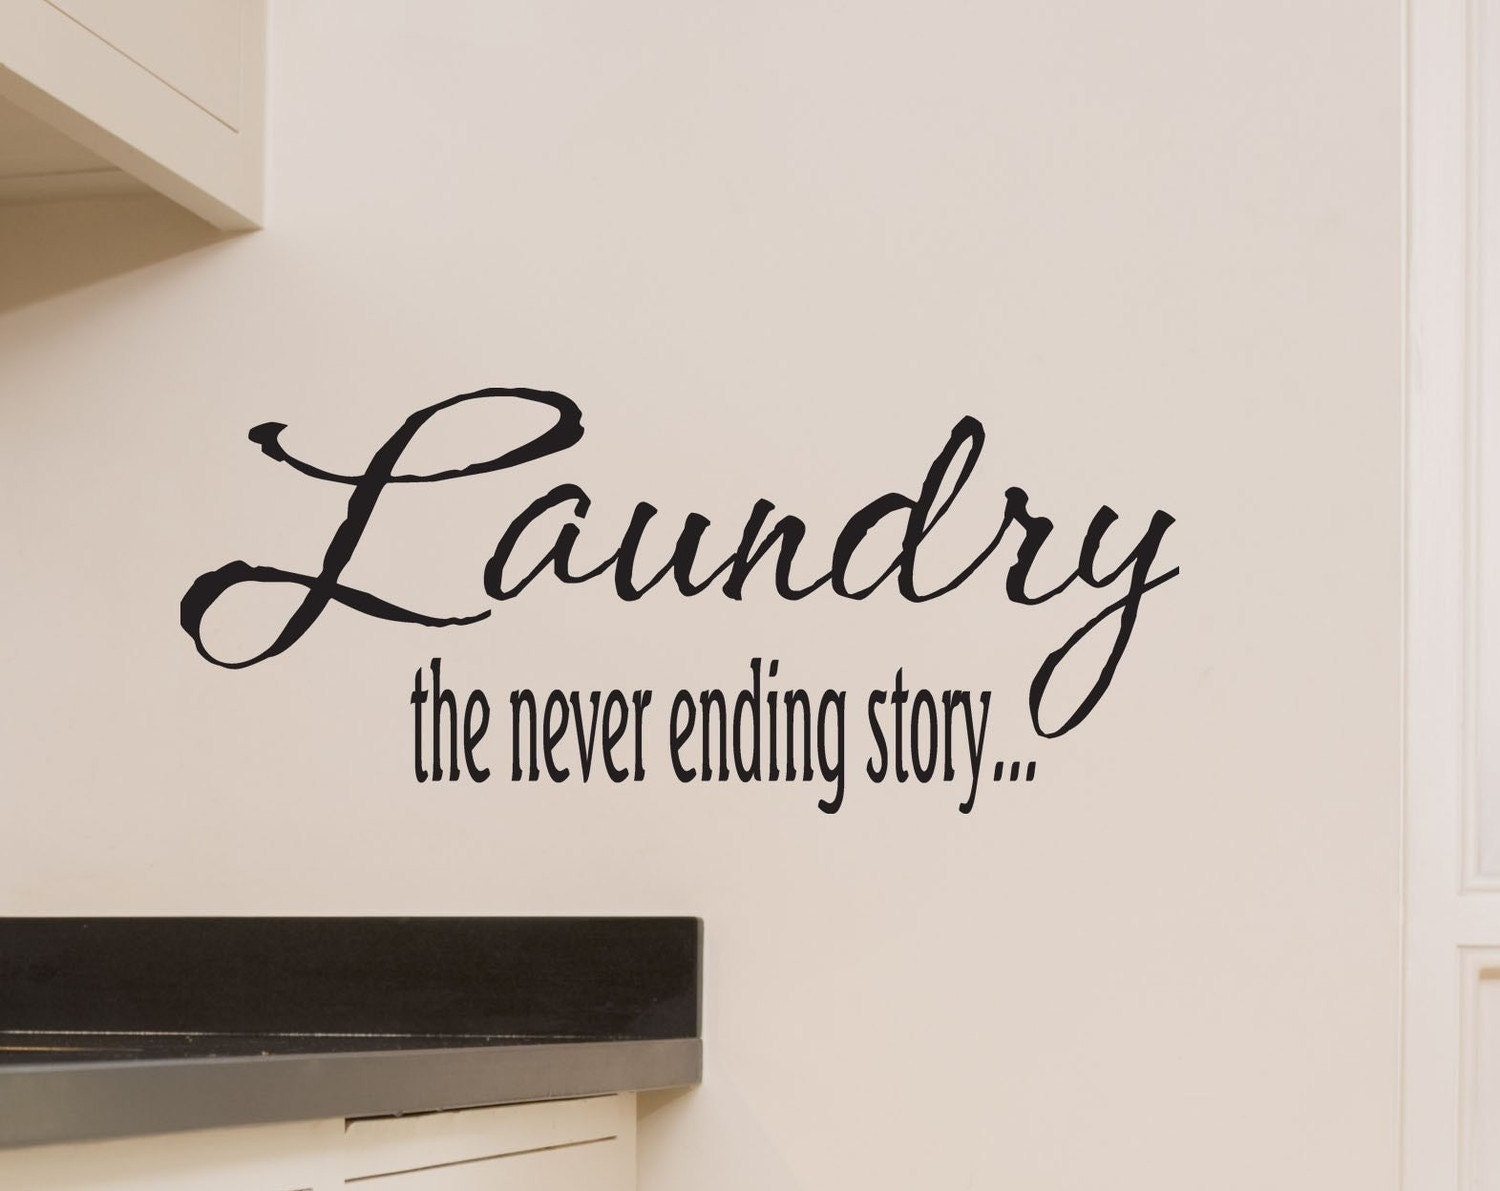 Laundry Room Wall Decor Stickers : Laundry the never ending story wall decal for room